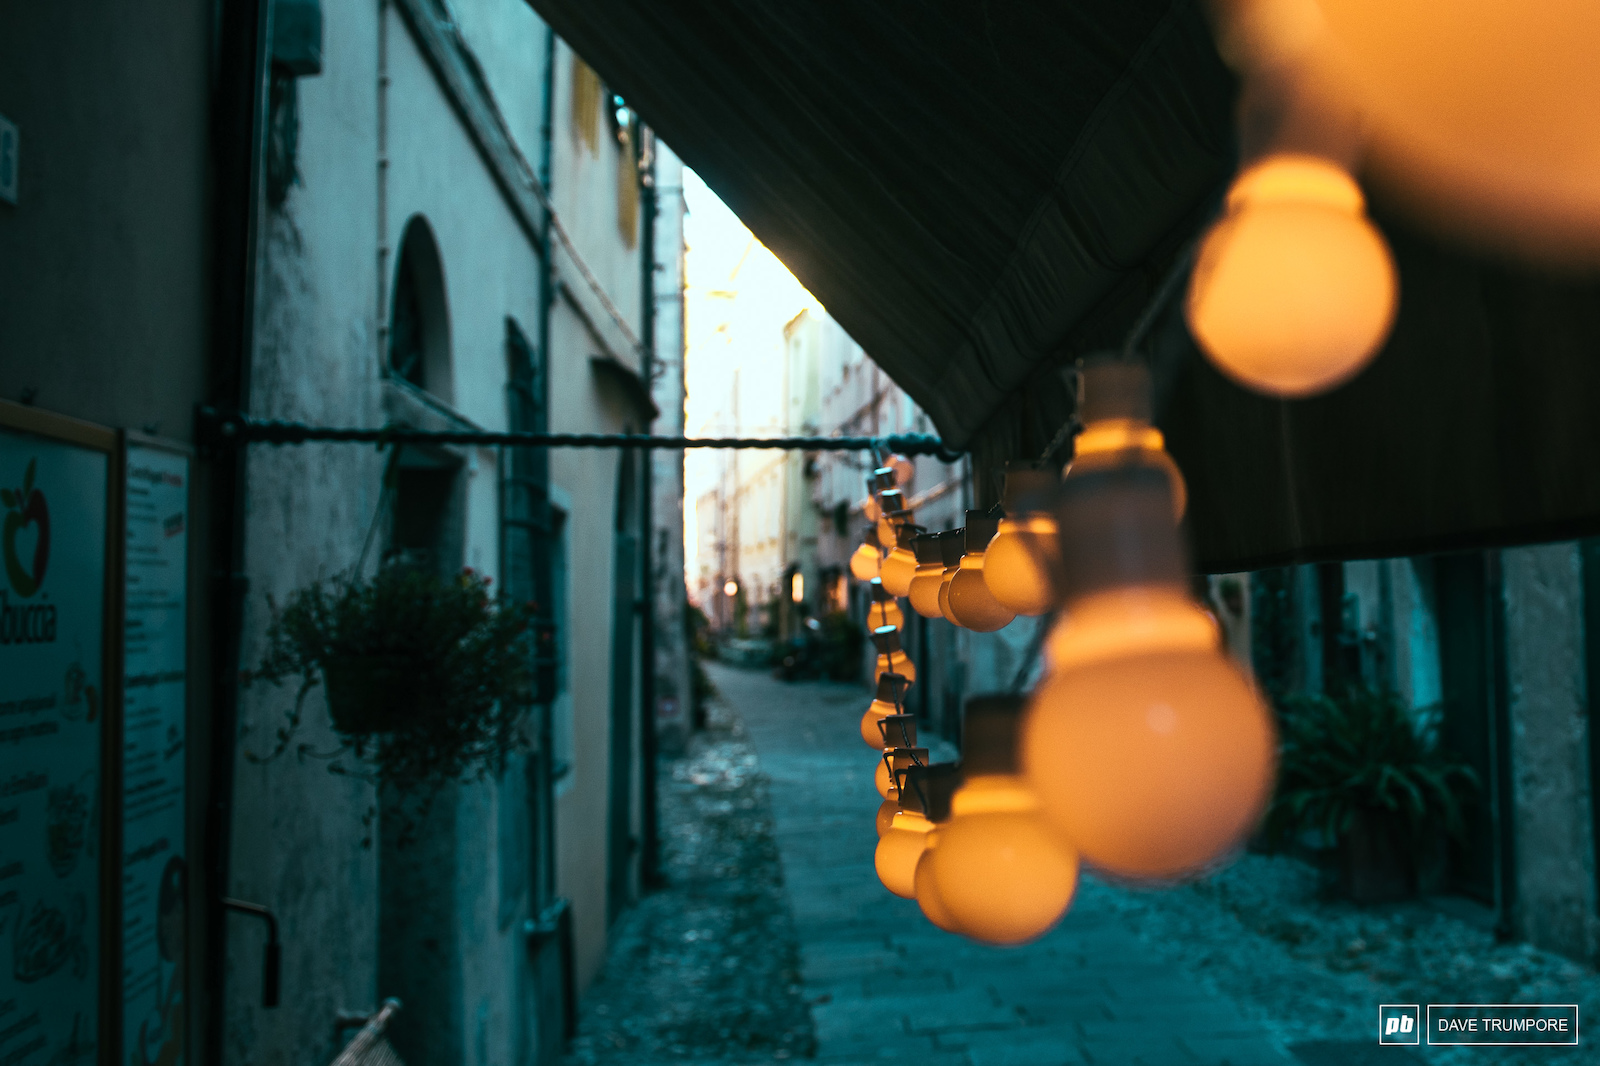 Some of the best food and drink are hidden in the alleys away from the main tourist streets.